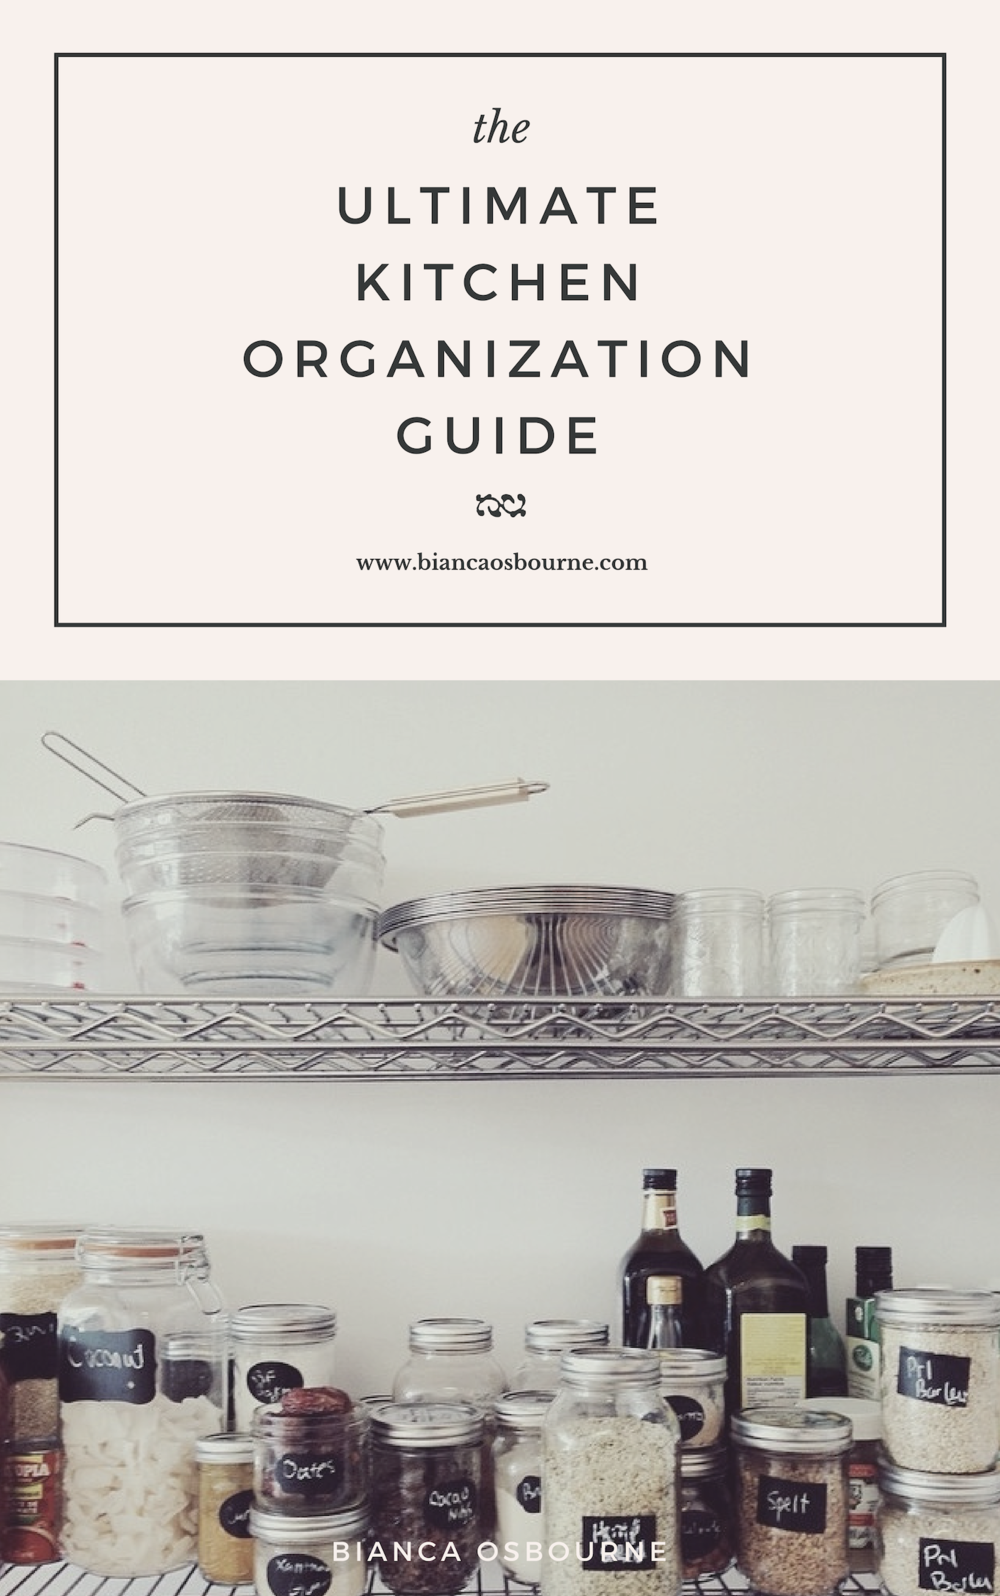 Ultimate Kitchen Organization Guide - Personal Chef, Meal Prep Expert and Toronto Blogger